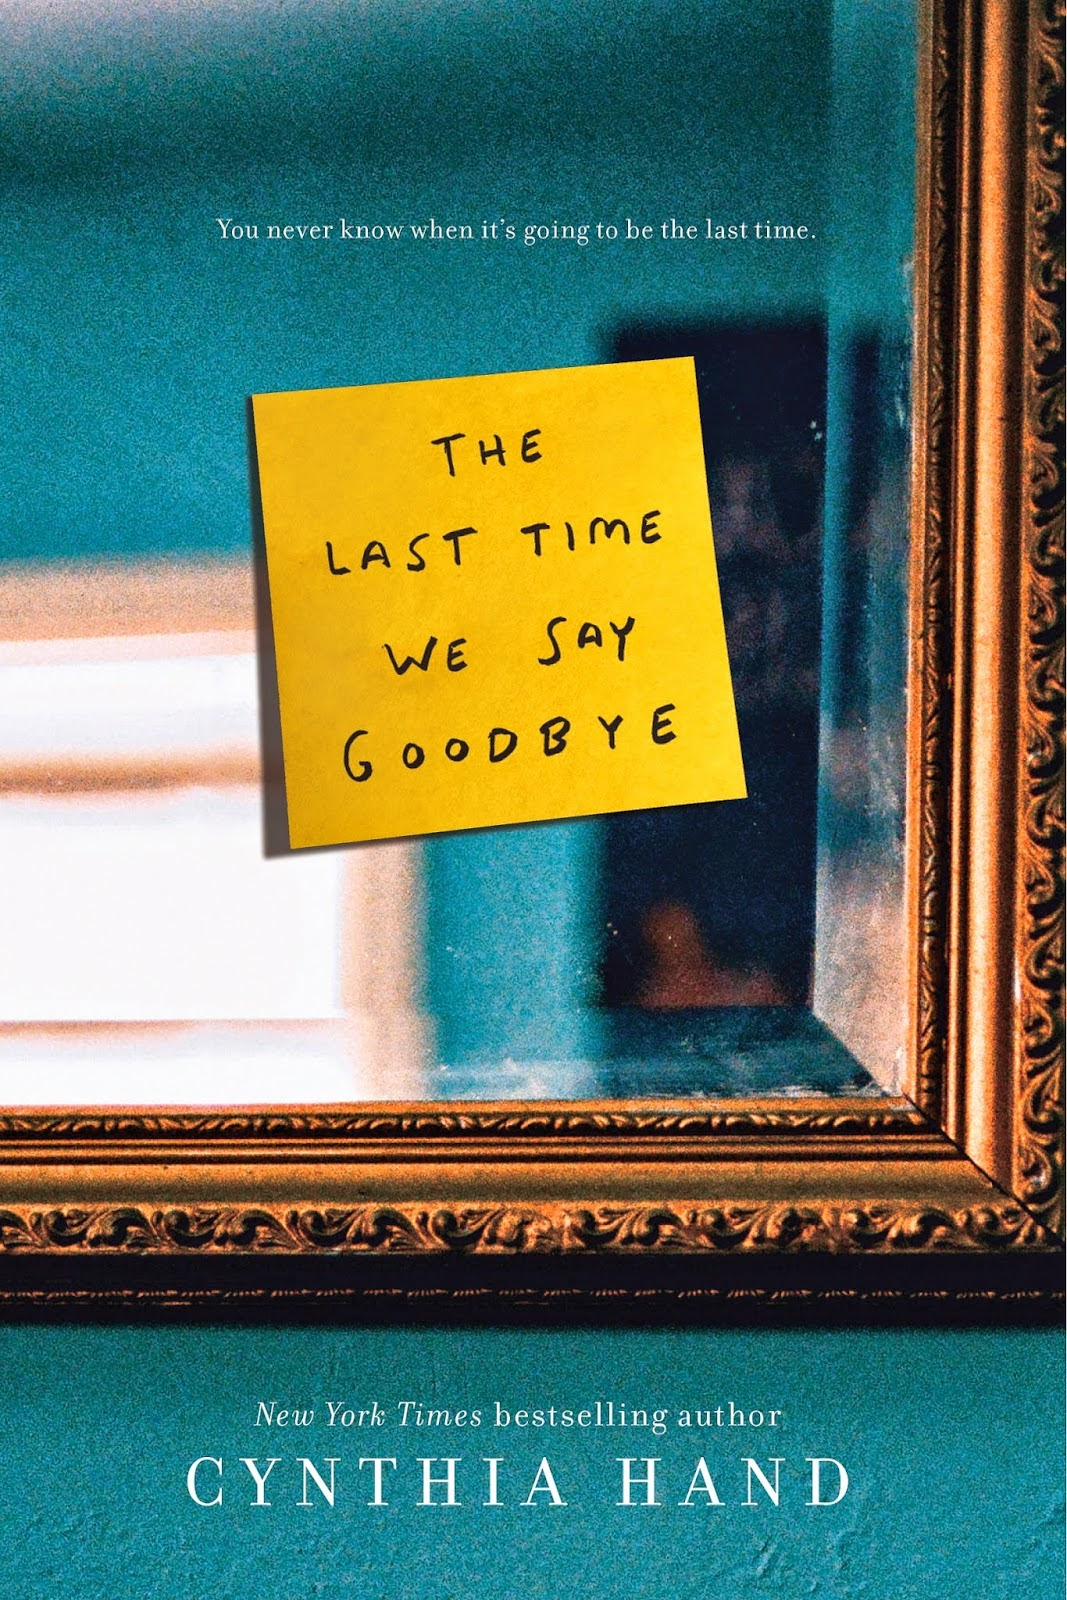 Say Goodbye To Ads Youtube Red Is Live: LibrisNotes: The Last Time We Say Goodbye By Cynthia Hand